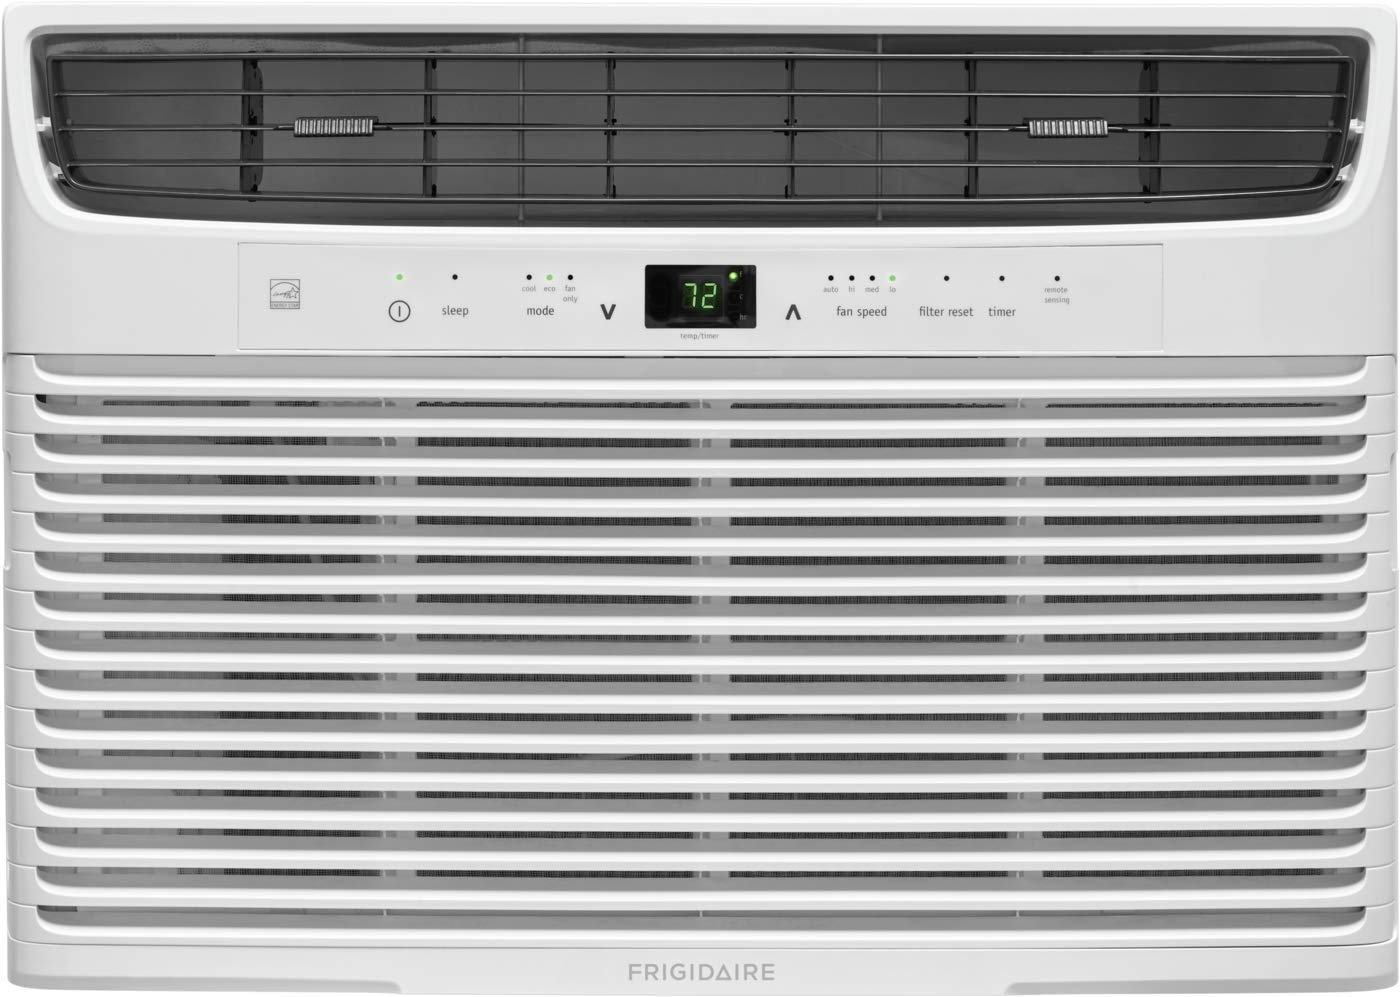 FRIGIDAIRE FFRE103ZA1 10,000 BTU Window-Mounted Room Air Conditioner, White